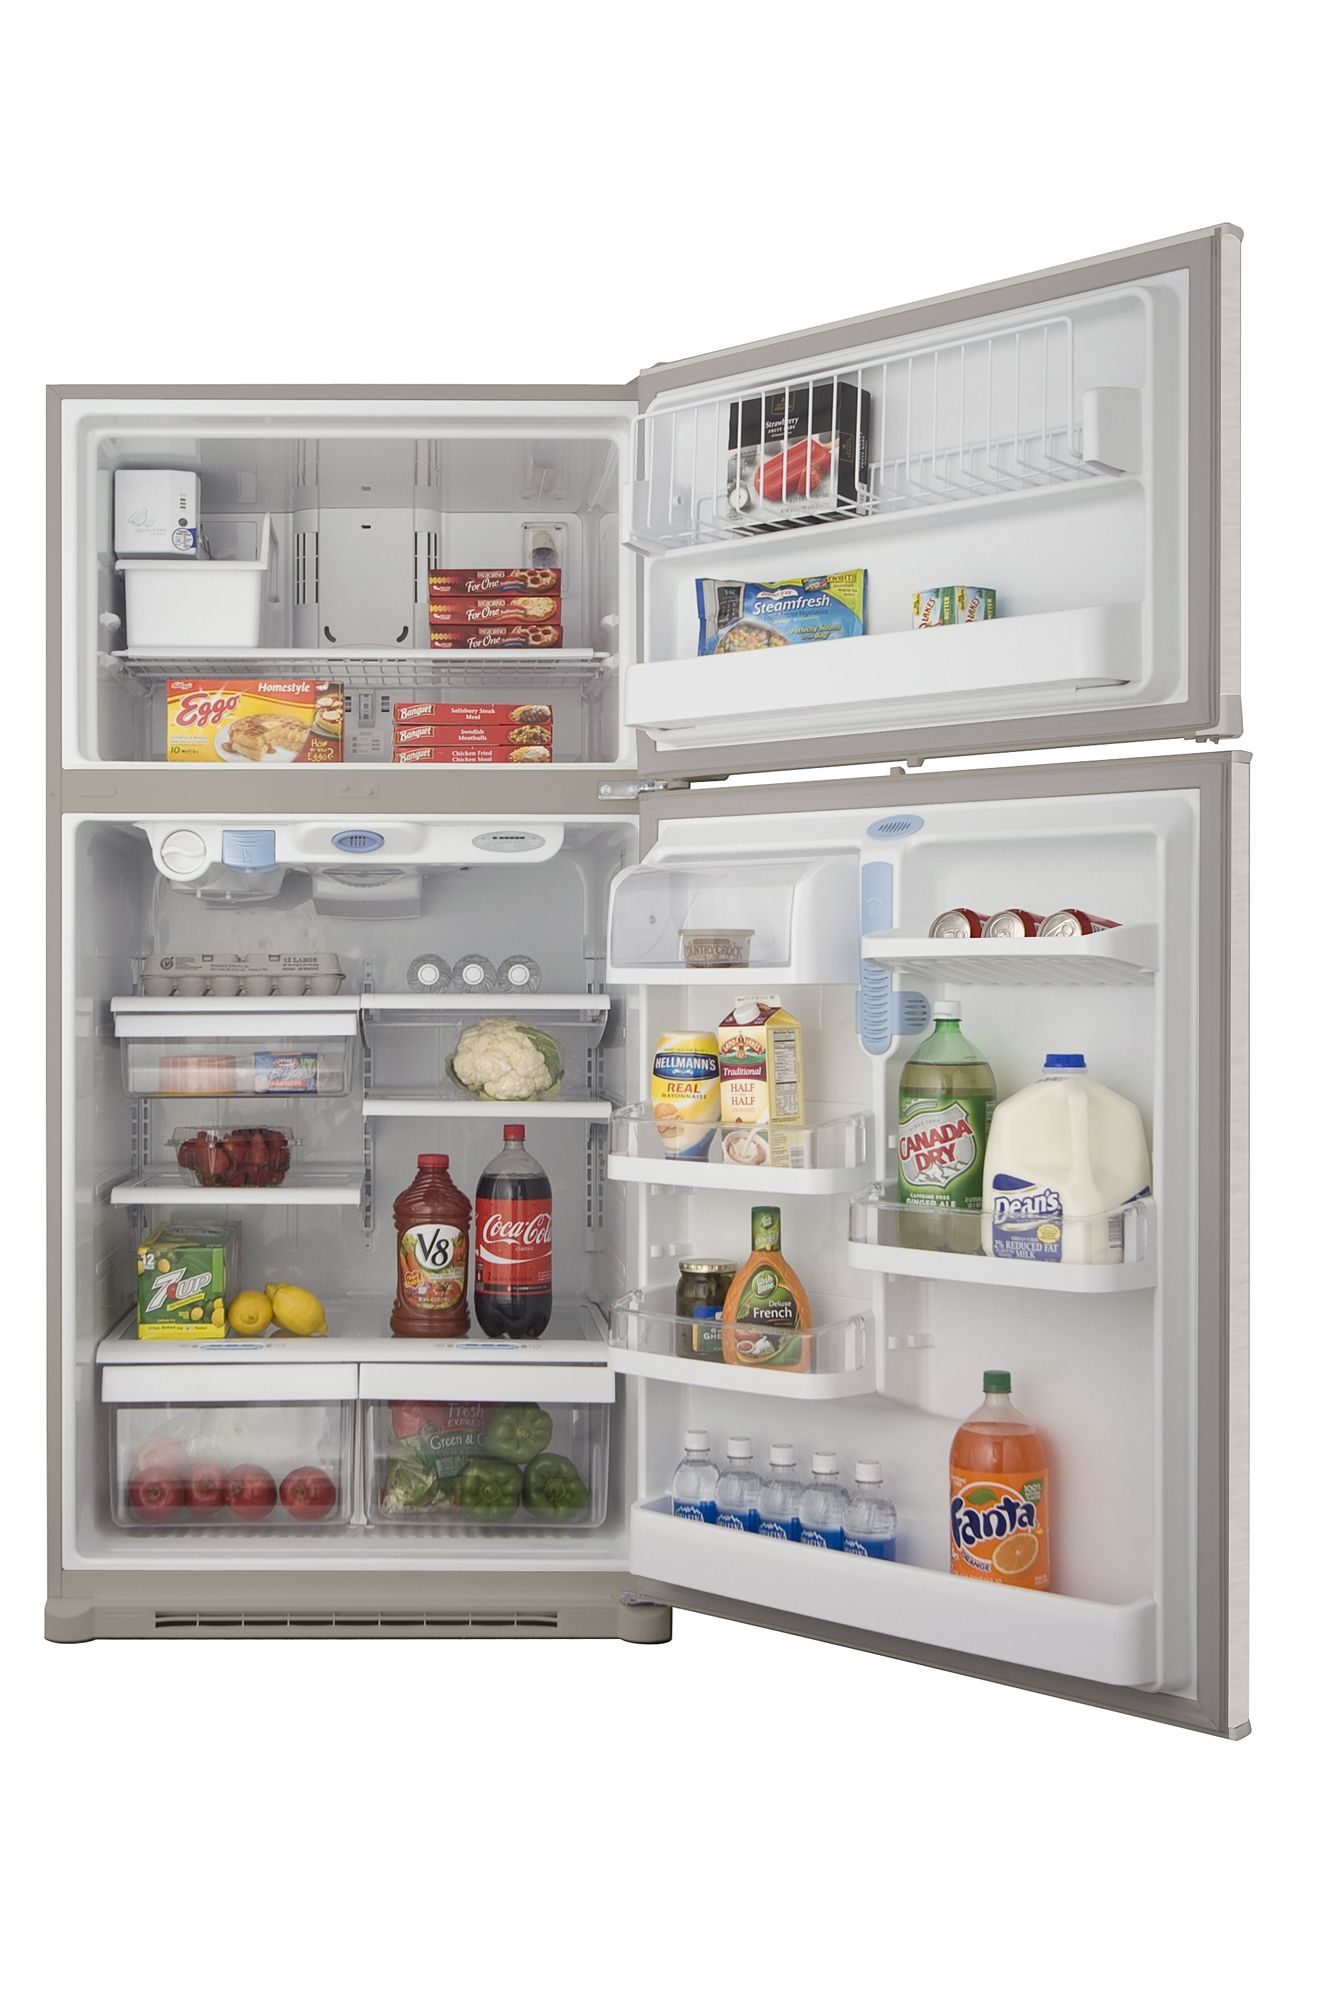 Kenmore 19.0 cu. ft. Top Freezer Refrigerator w/ Internal Water Dispenser - Stainless Steel